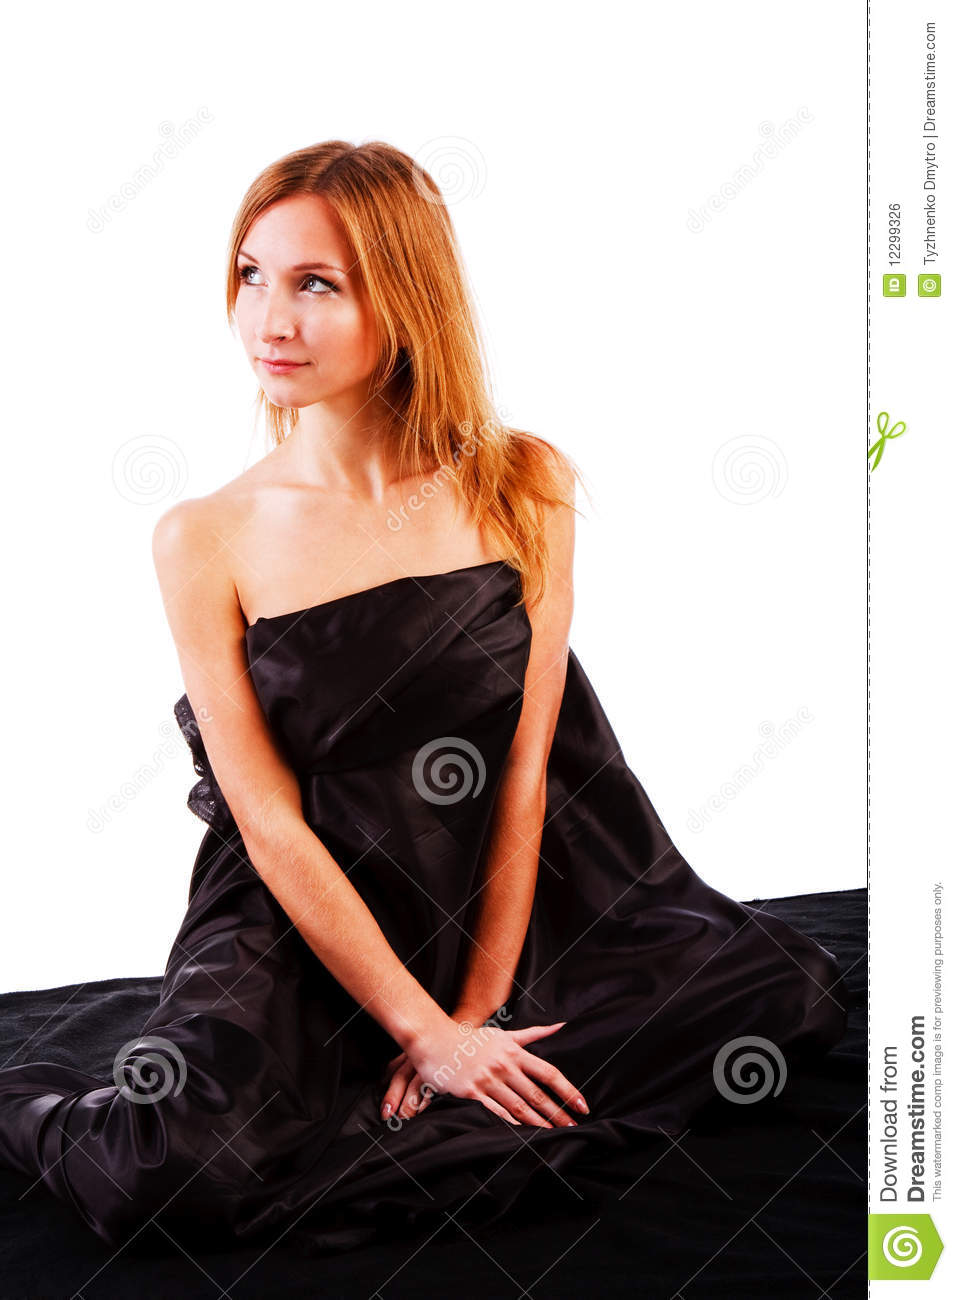 Beautiful charming young girl on bed royalty free stock image image 12299326 - Charming teenage girls image ...